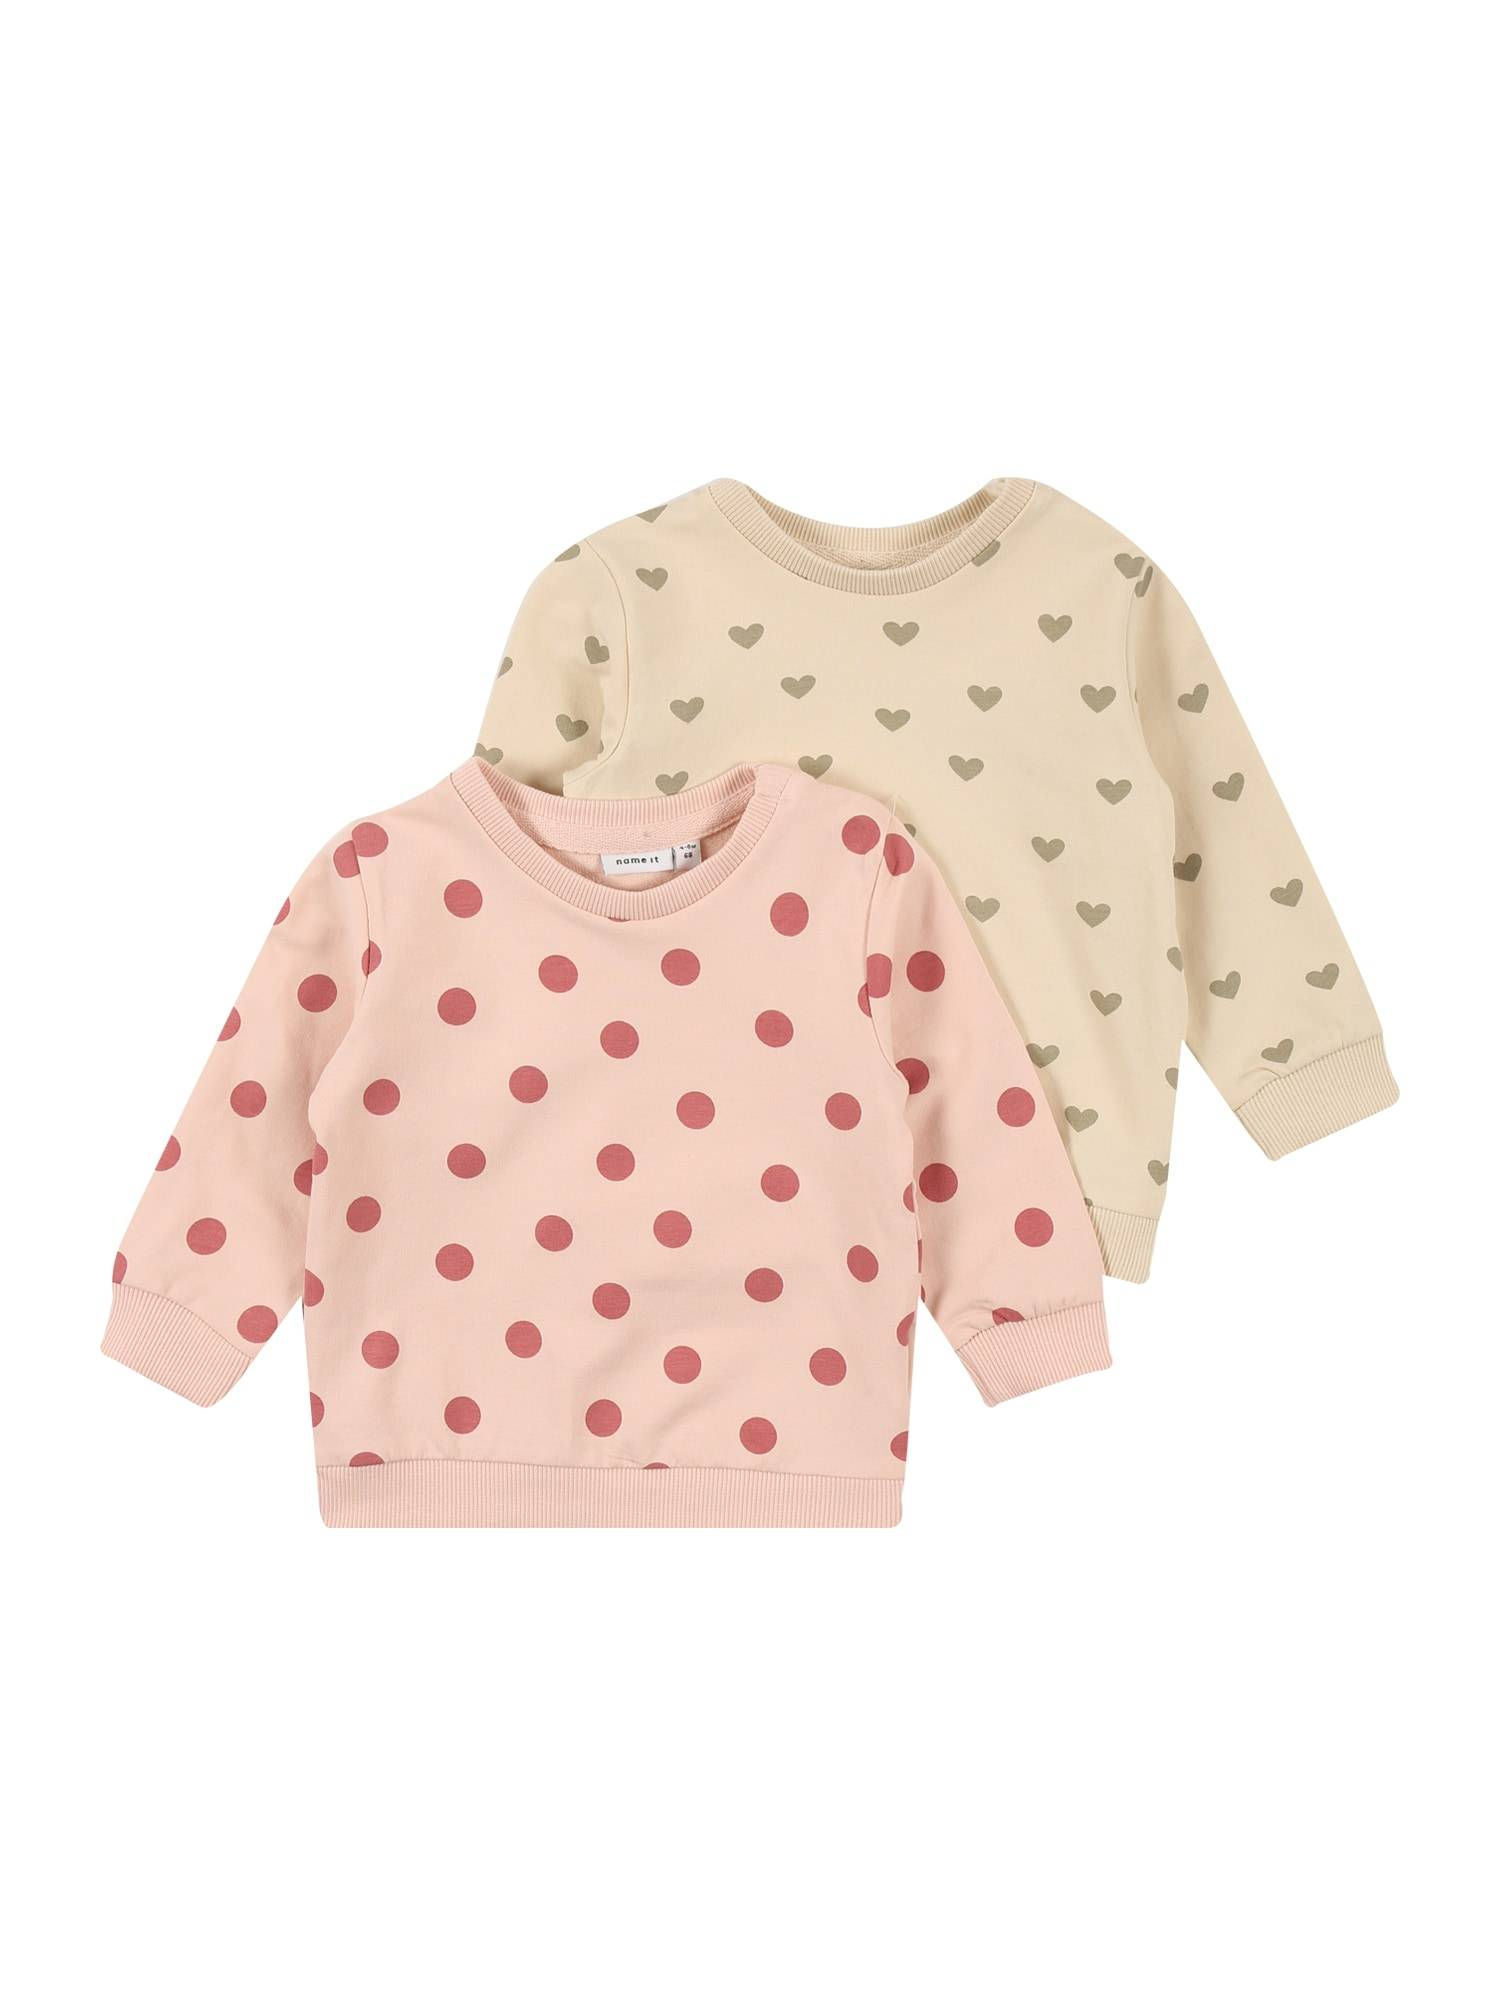 NAME IT Sweat-shirt 'TINNE'  - Rose, Beige - Taille: 50 - kids